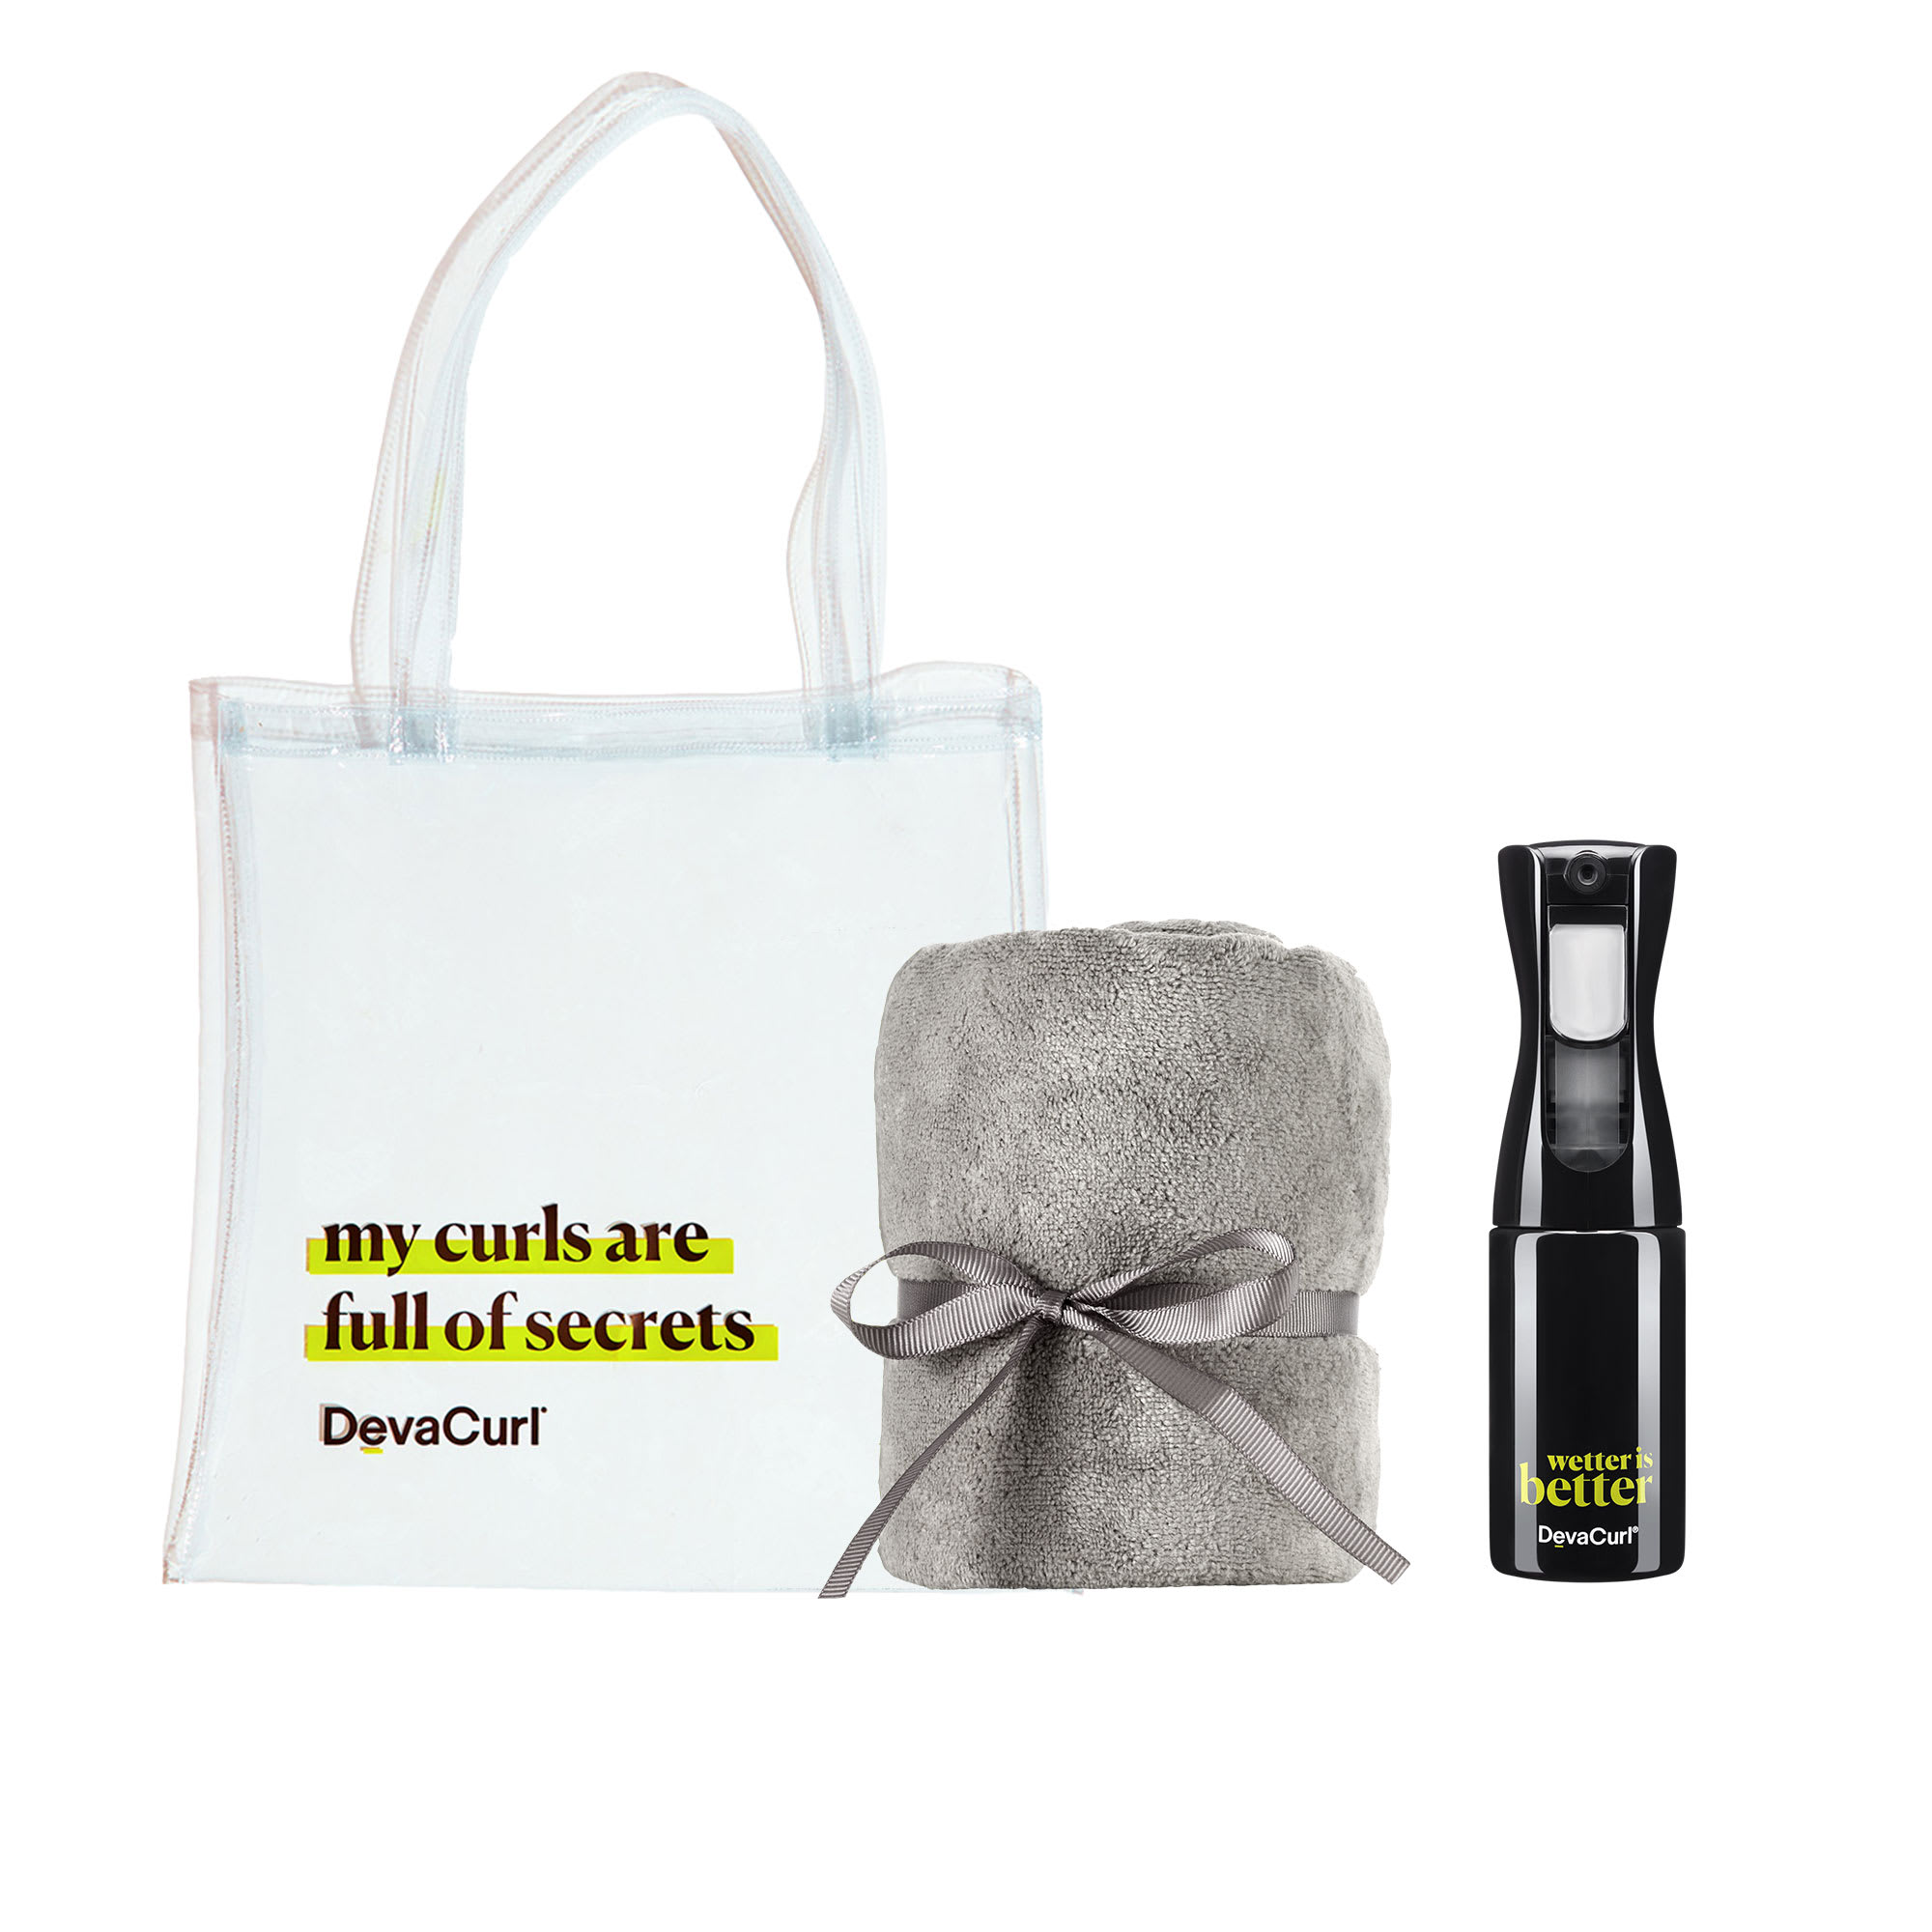 Deva Tote, DevaTowel & Spray Bottle